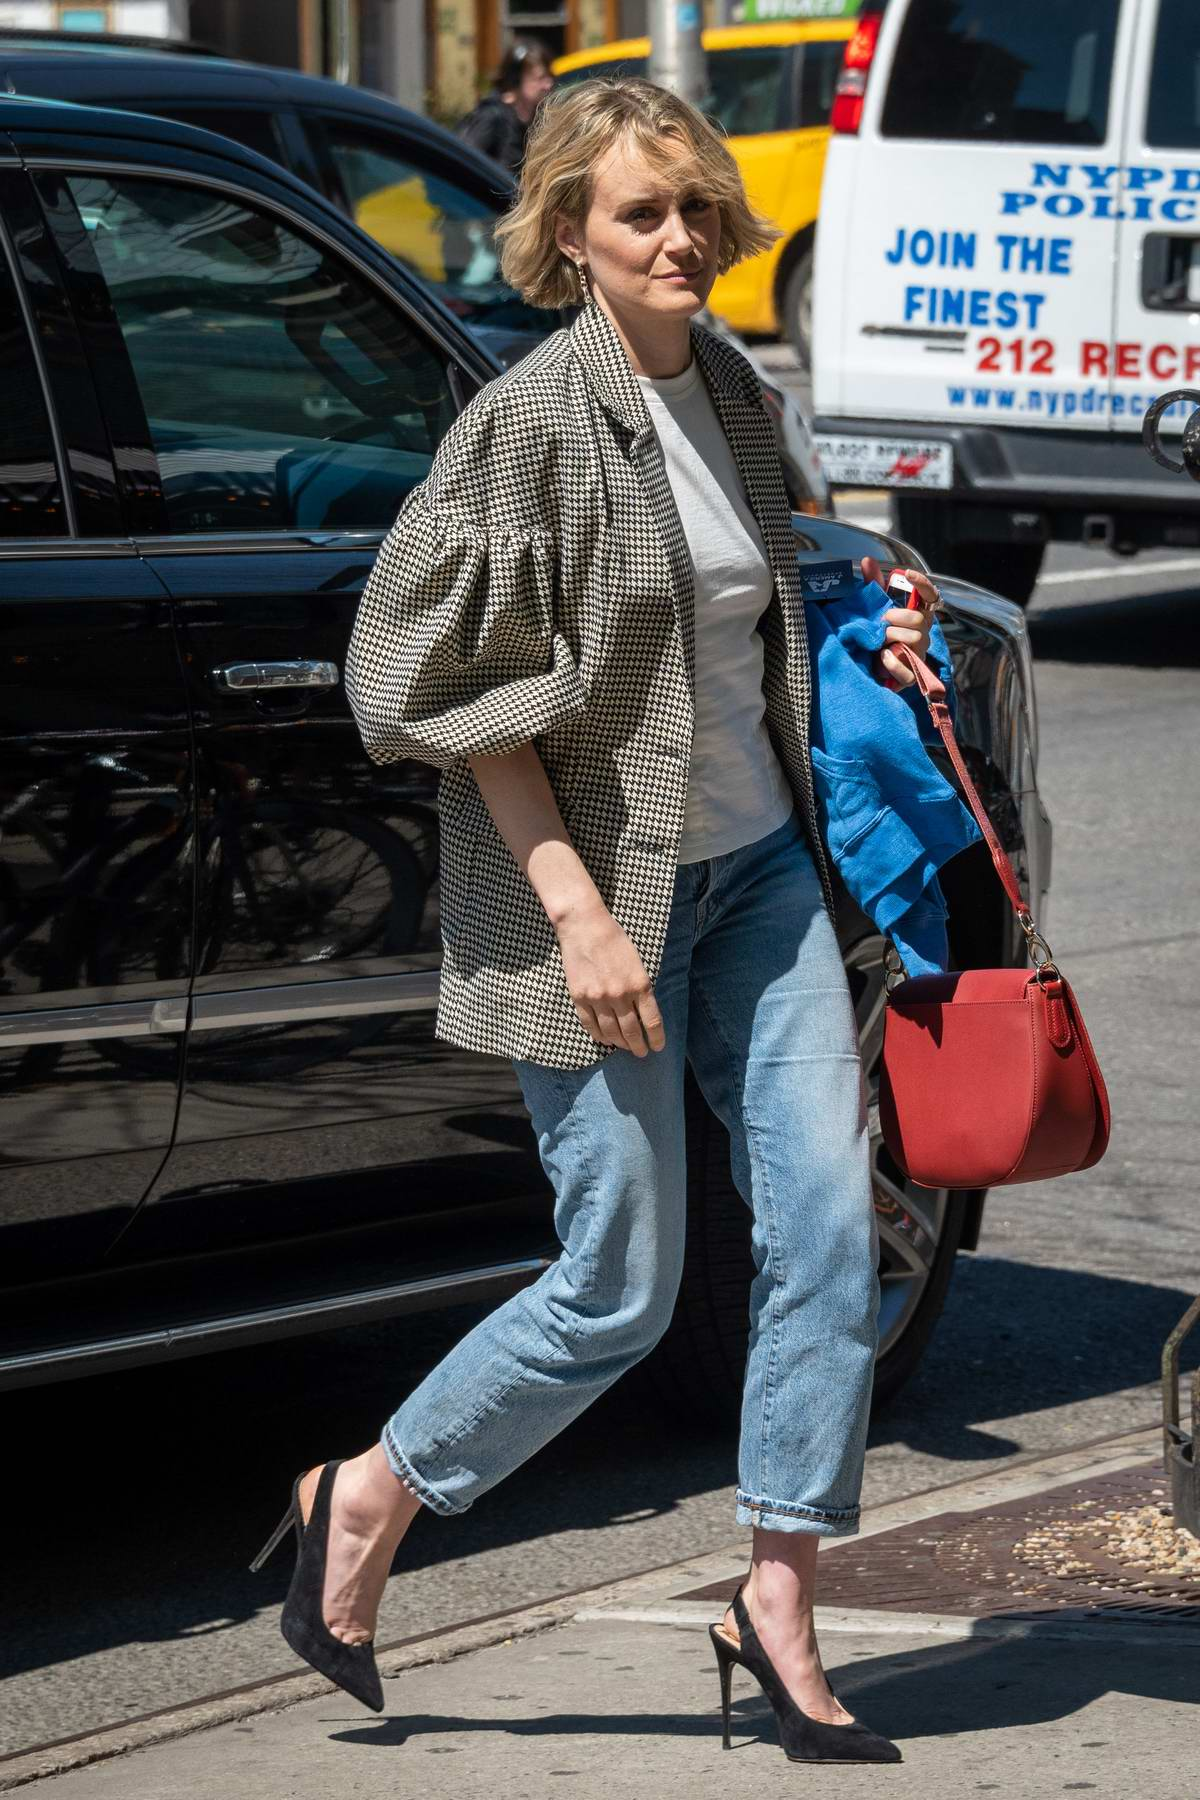 Taylor Schilling rocks a plaid blazer, white top and jeans while out and about in New York City